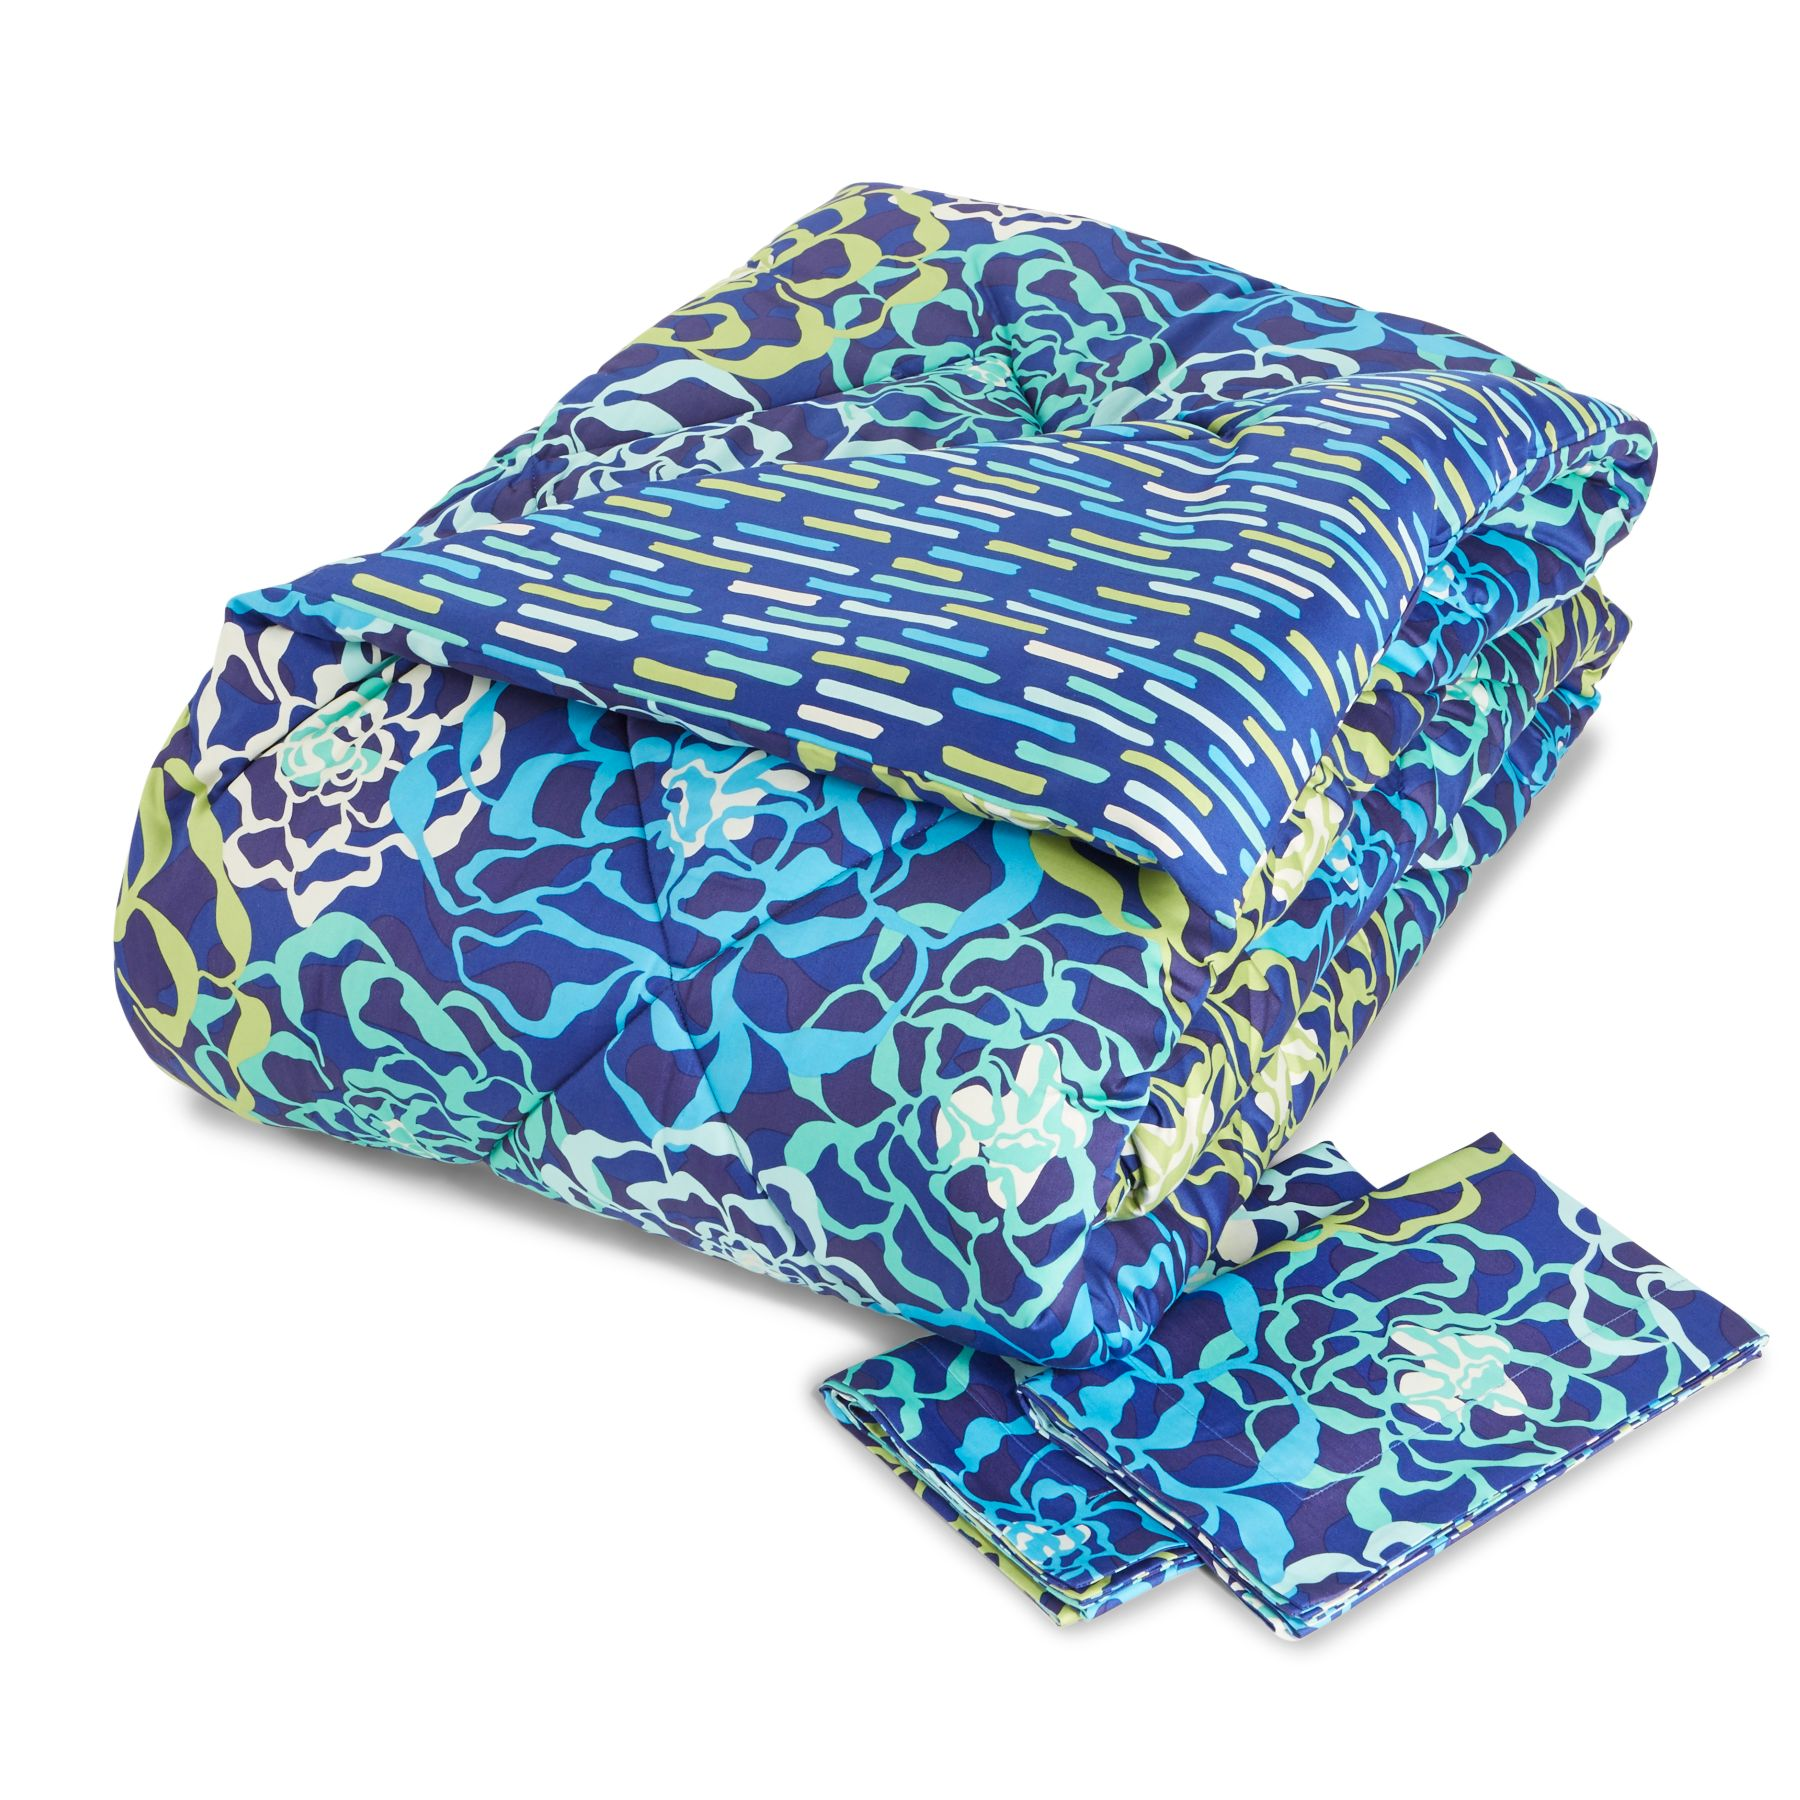 Vera Bradley Cozy Comforter Set Full Queen Ebay